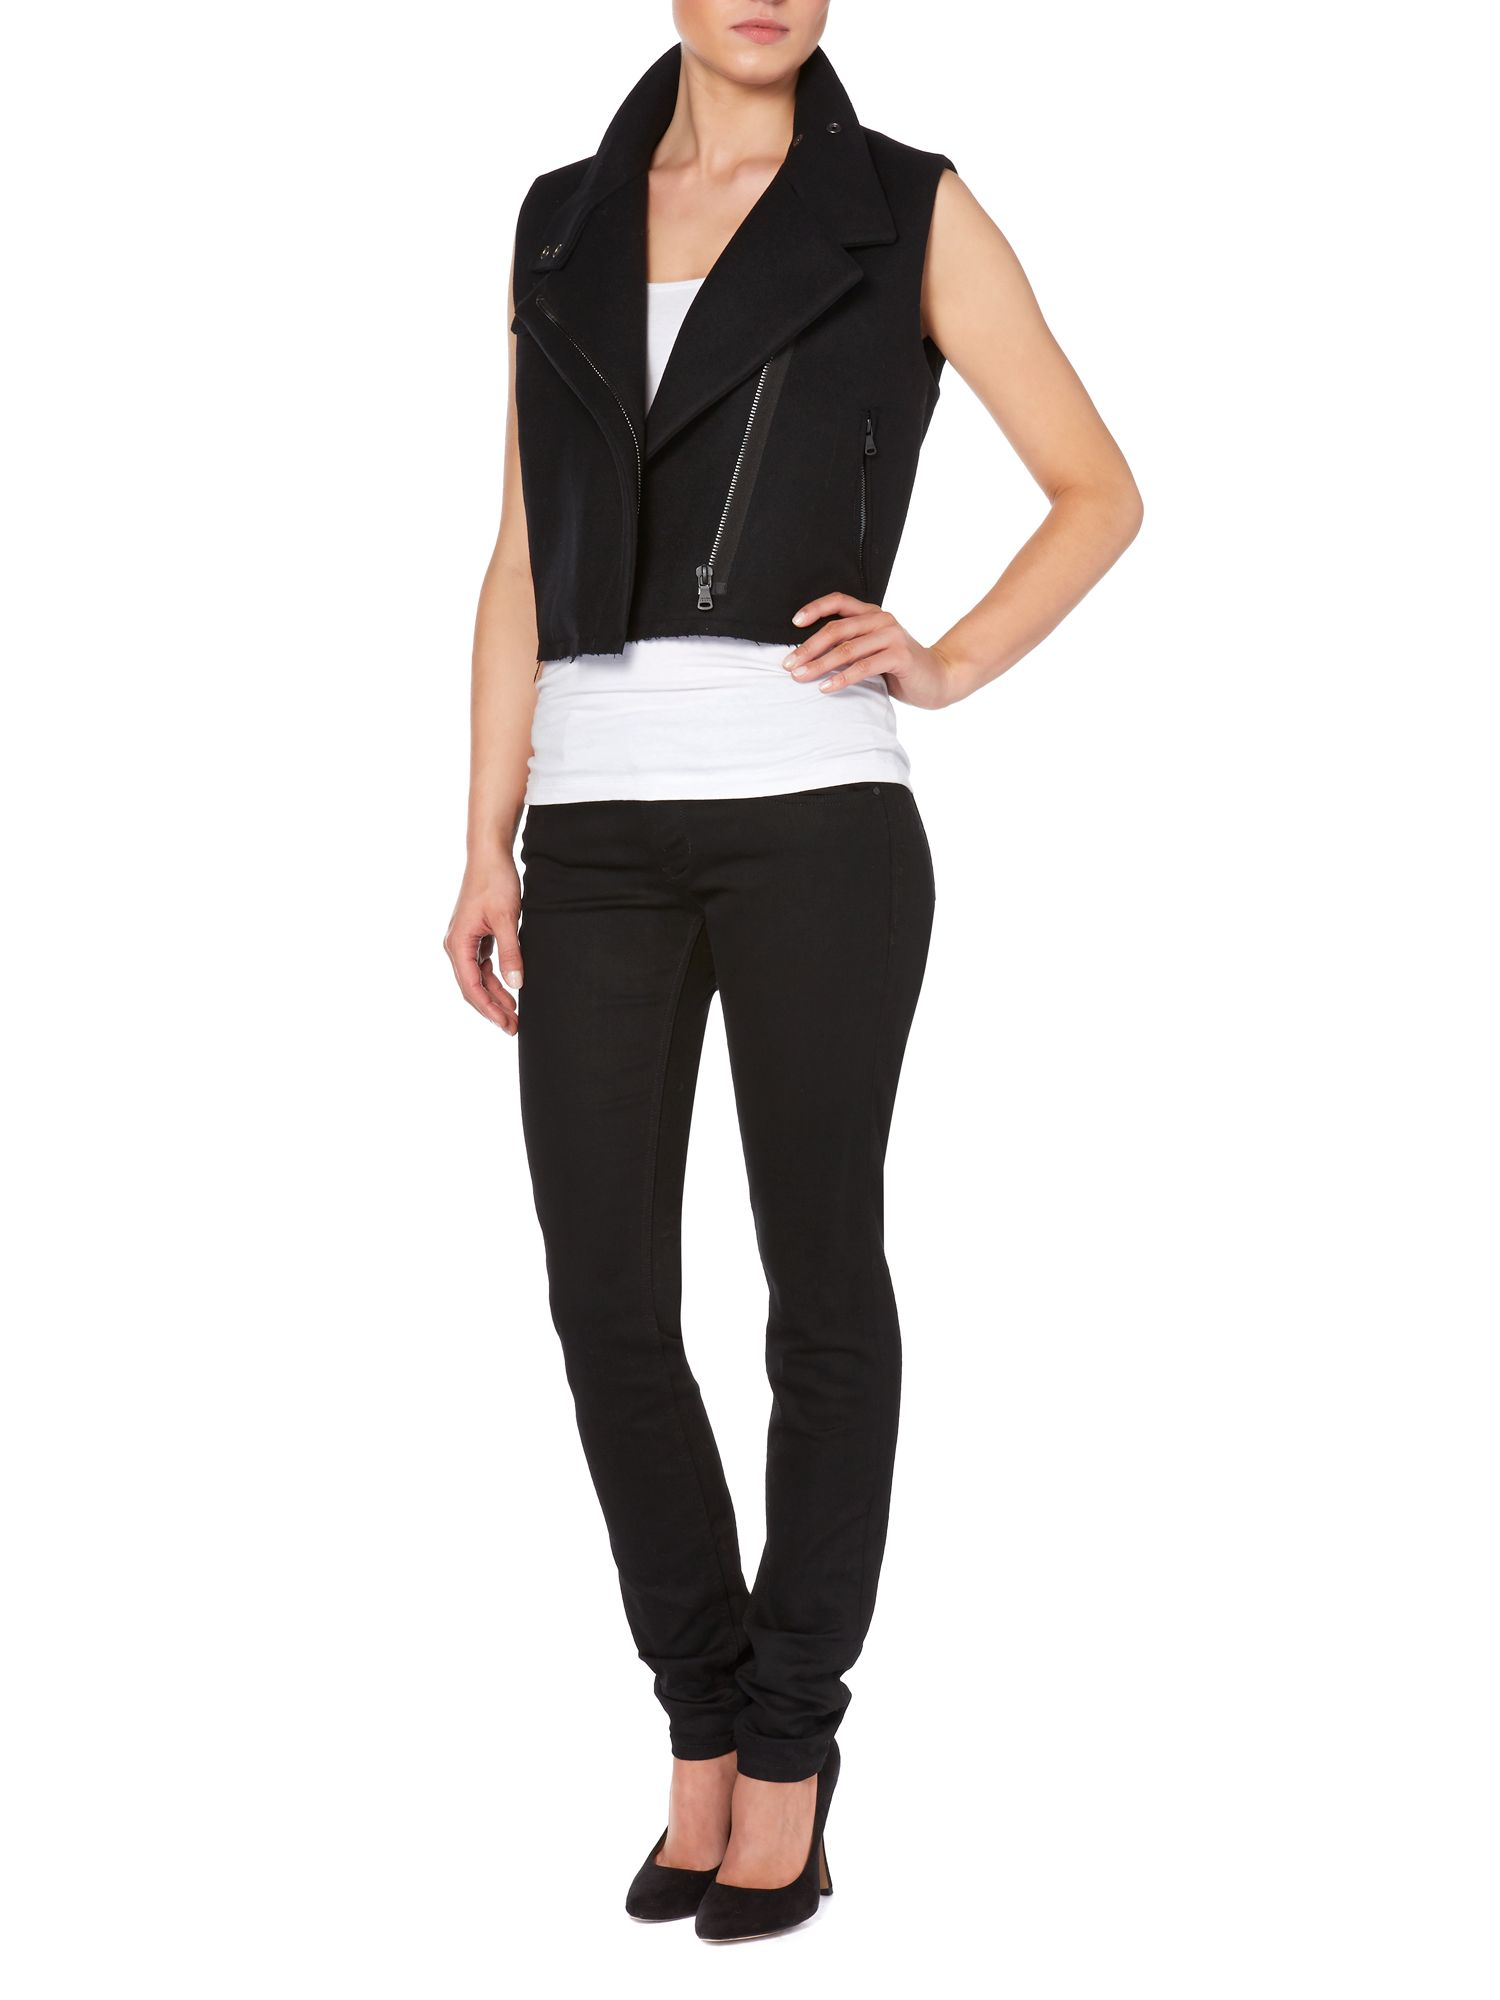 Odan sleeveless biker jacket